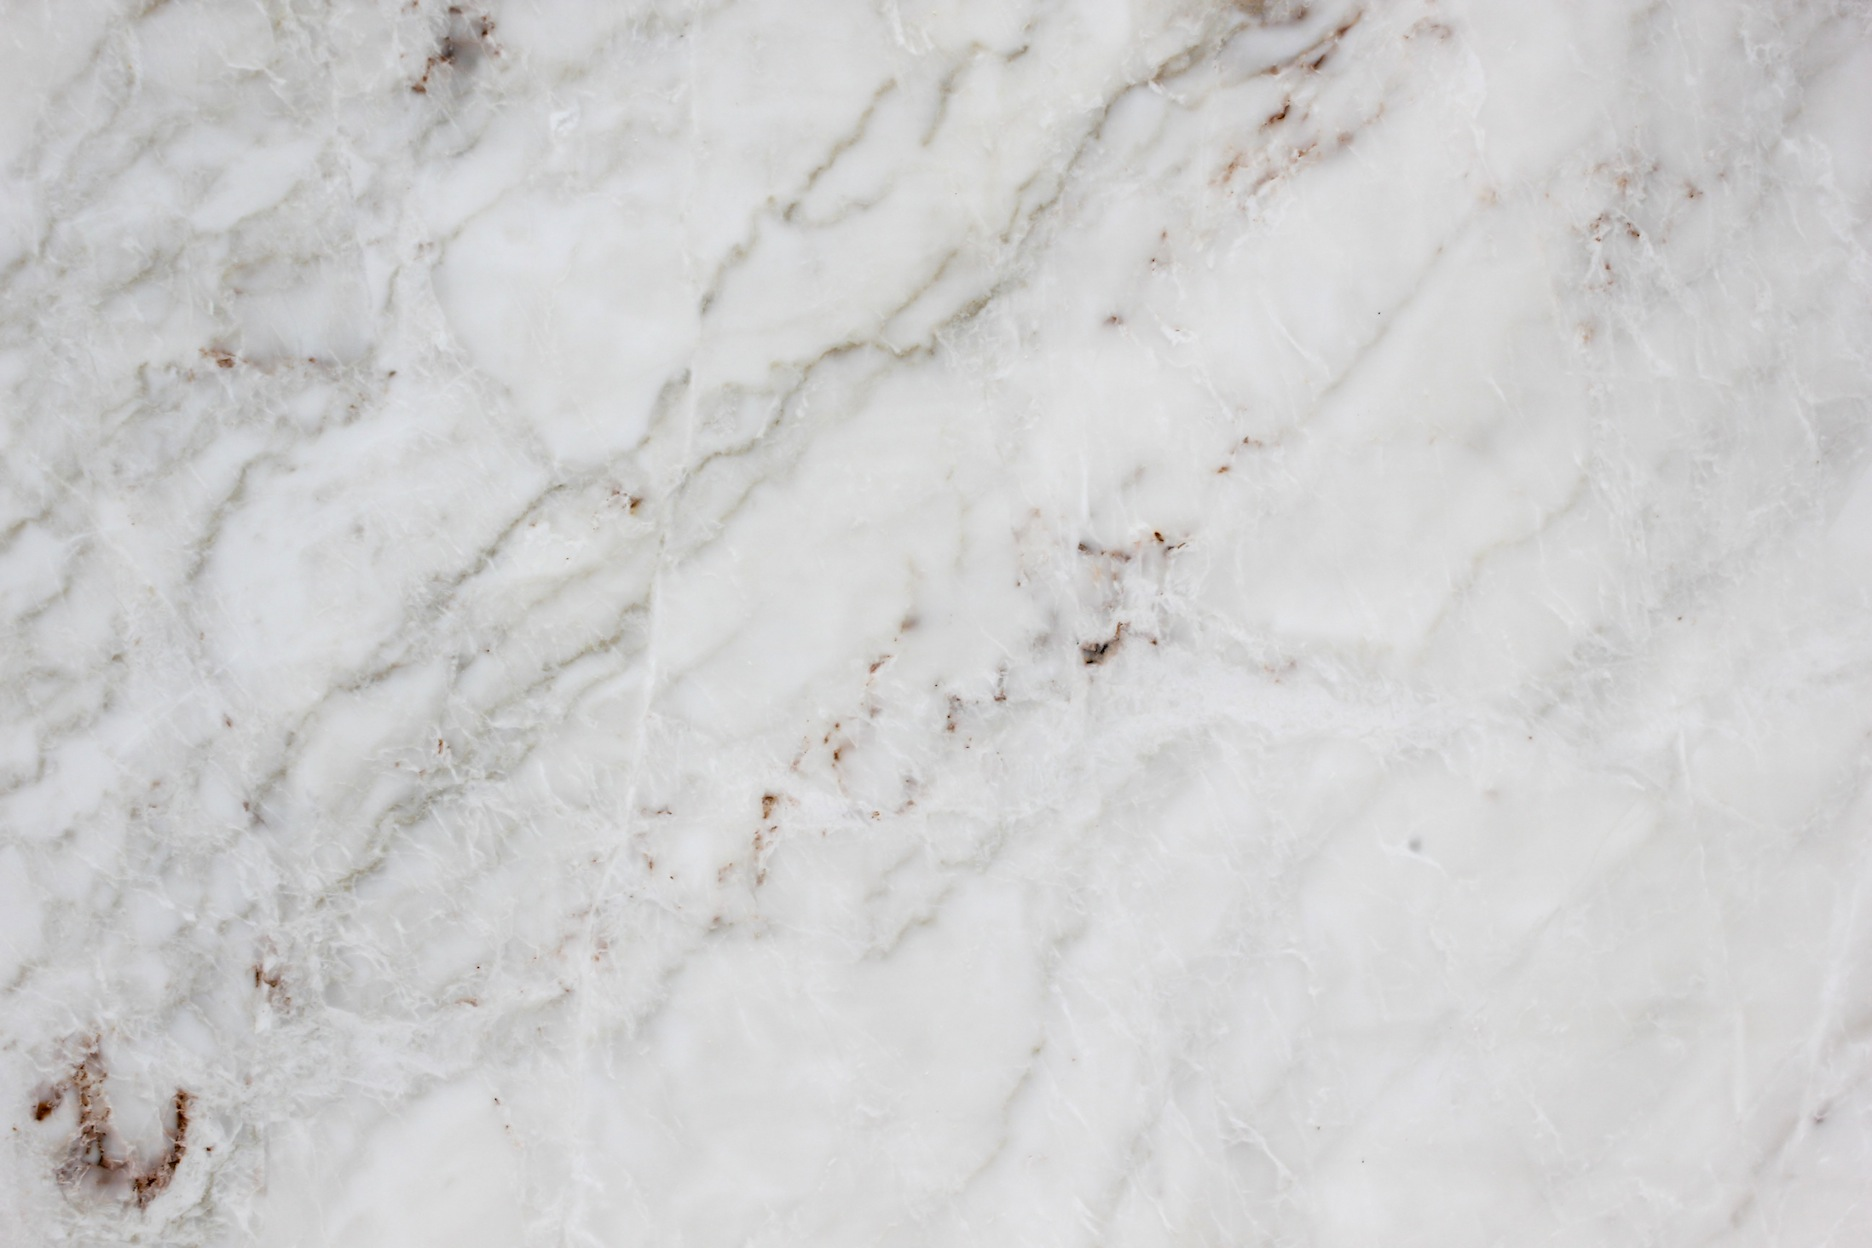 kitchen countertop comparison with Afyon Onyx Marble on Alternatives To Granite Countertops Md Va Dc as well denvergranitecountertop further Kitchen besides 363 in addition Bianco Antico.